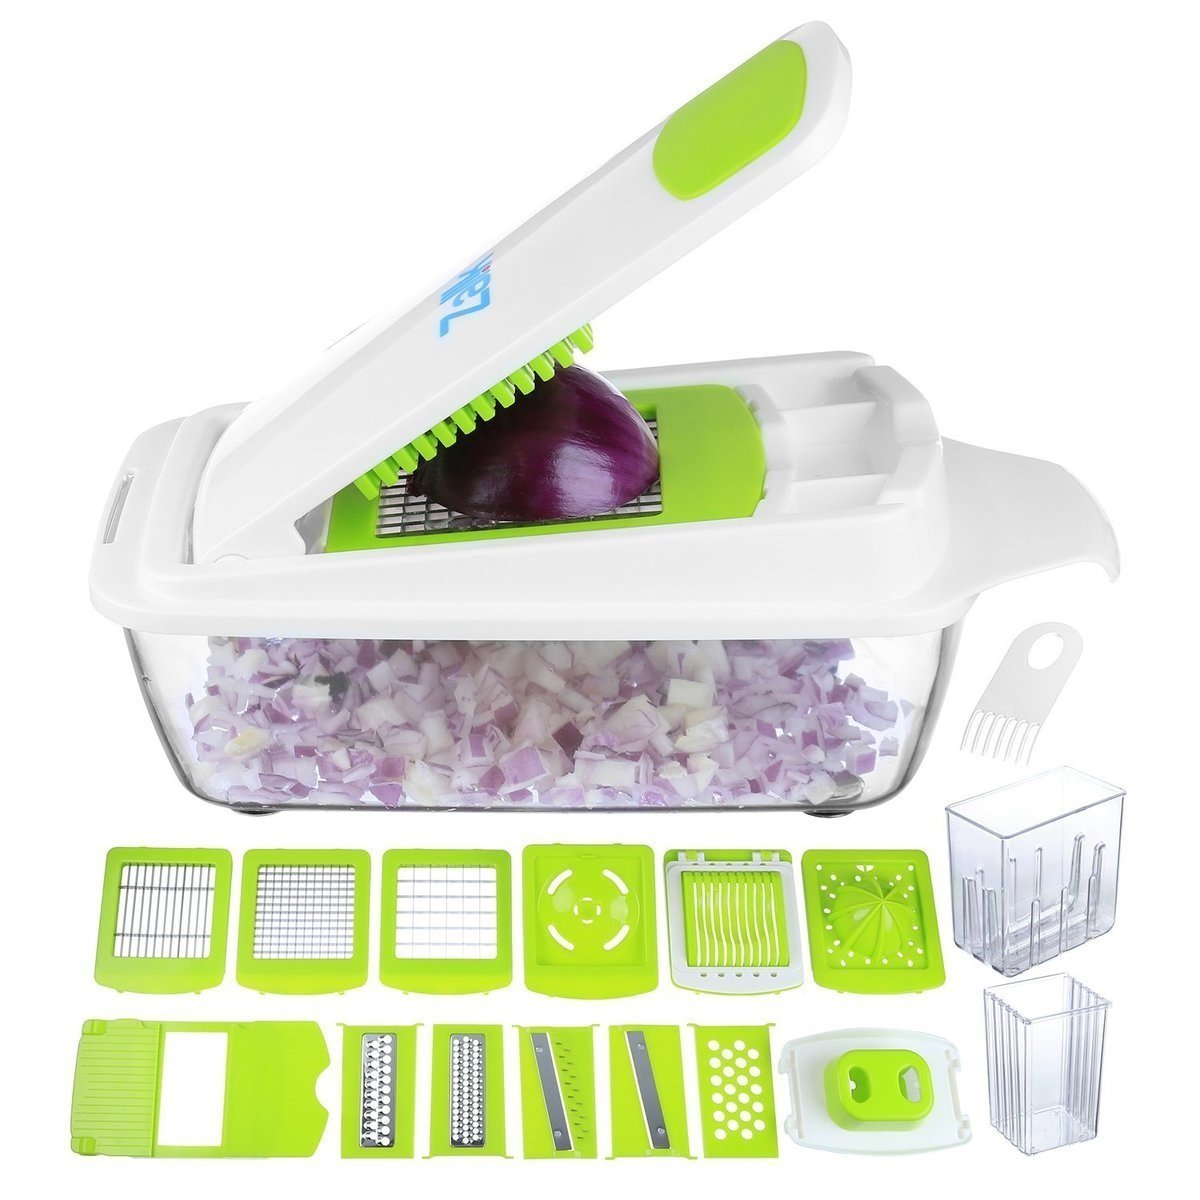 Zalik Vegetable Chopper Pro Onion Chopper - Mandoline Slicer Dicer